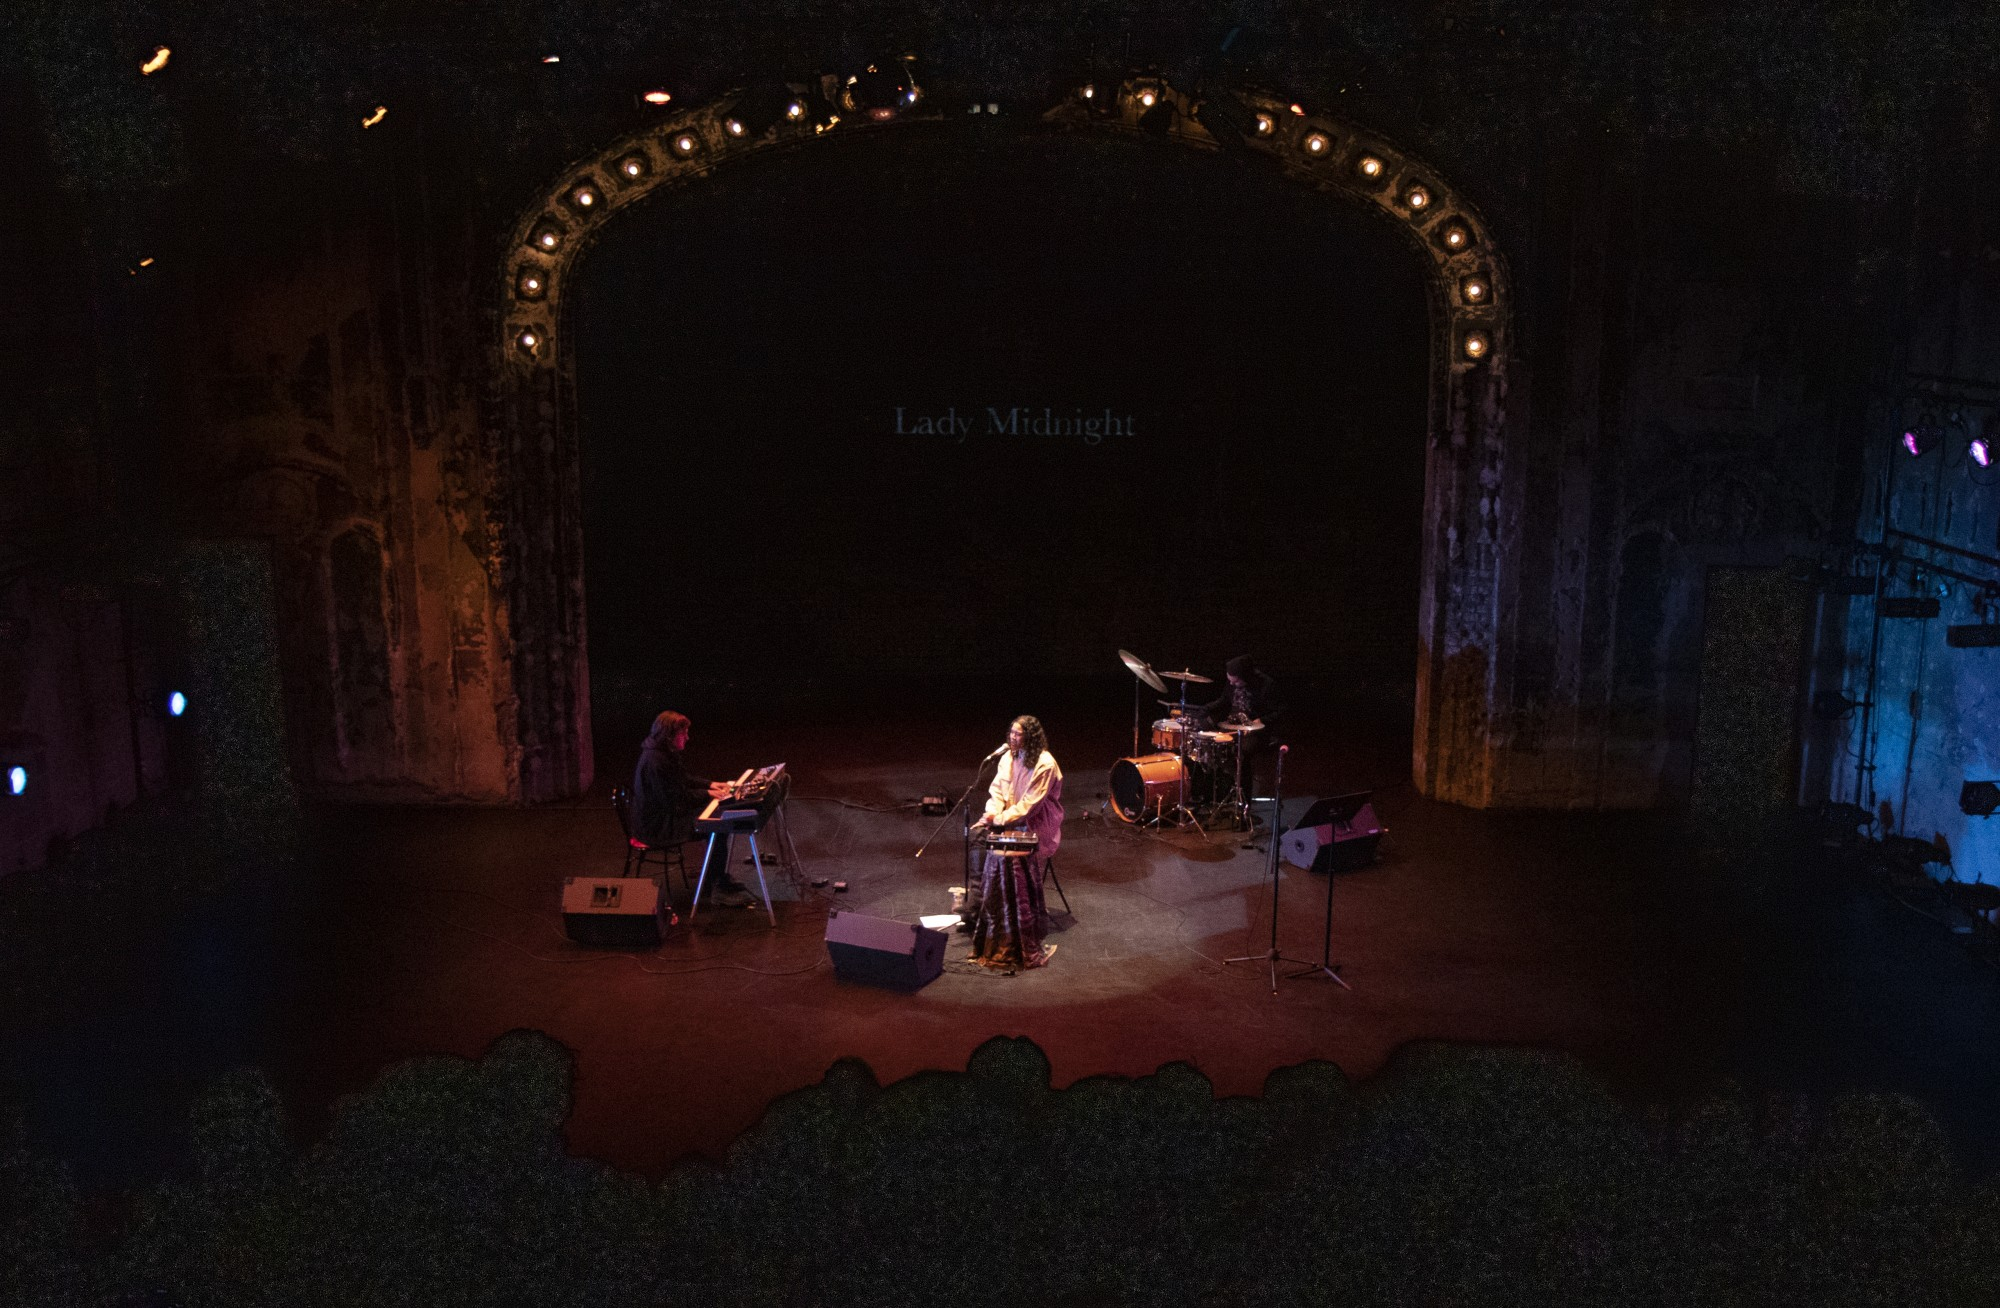 Lady Midnight performs at The Southern Theater as part of